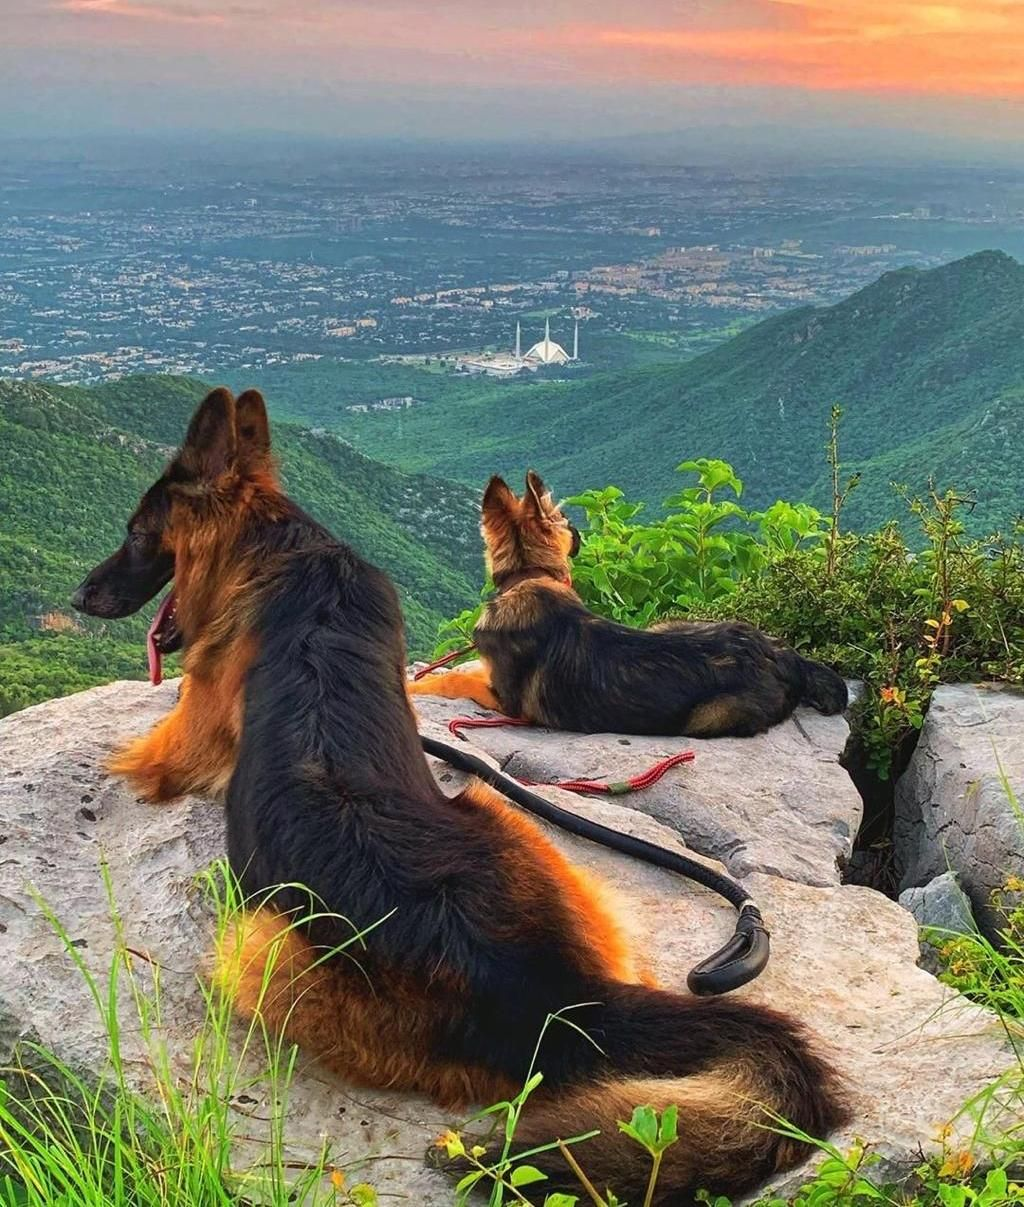 With My Dogs On Hiking Trail 5 Islamabad Pakistan Hiking Camping Outdoors Nature Travel Backpacking Adventure M Dogs Day Out Dog Adventure Hiking Dogs